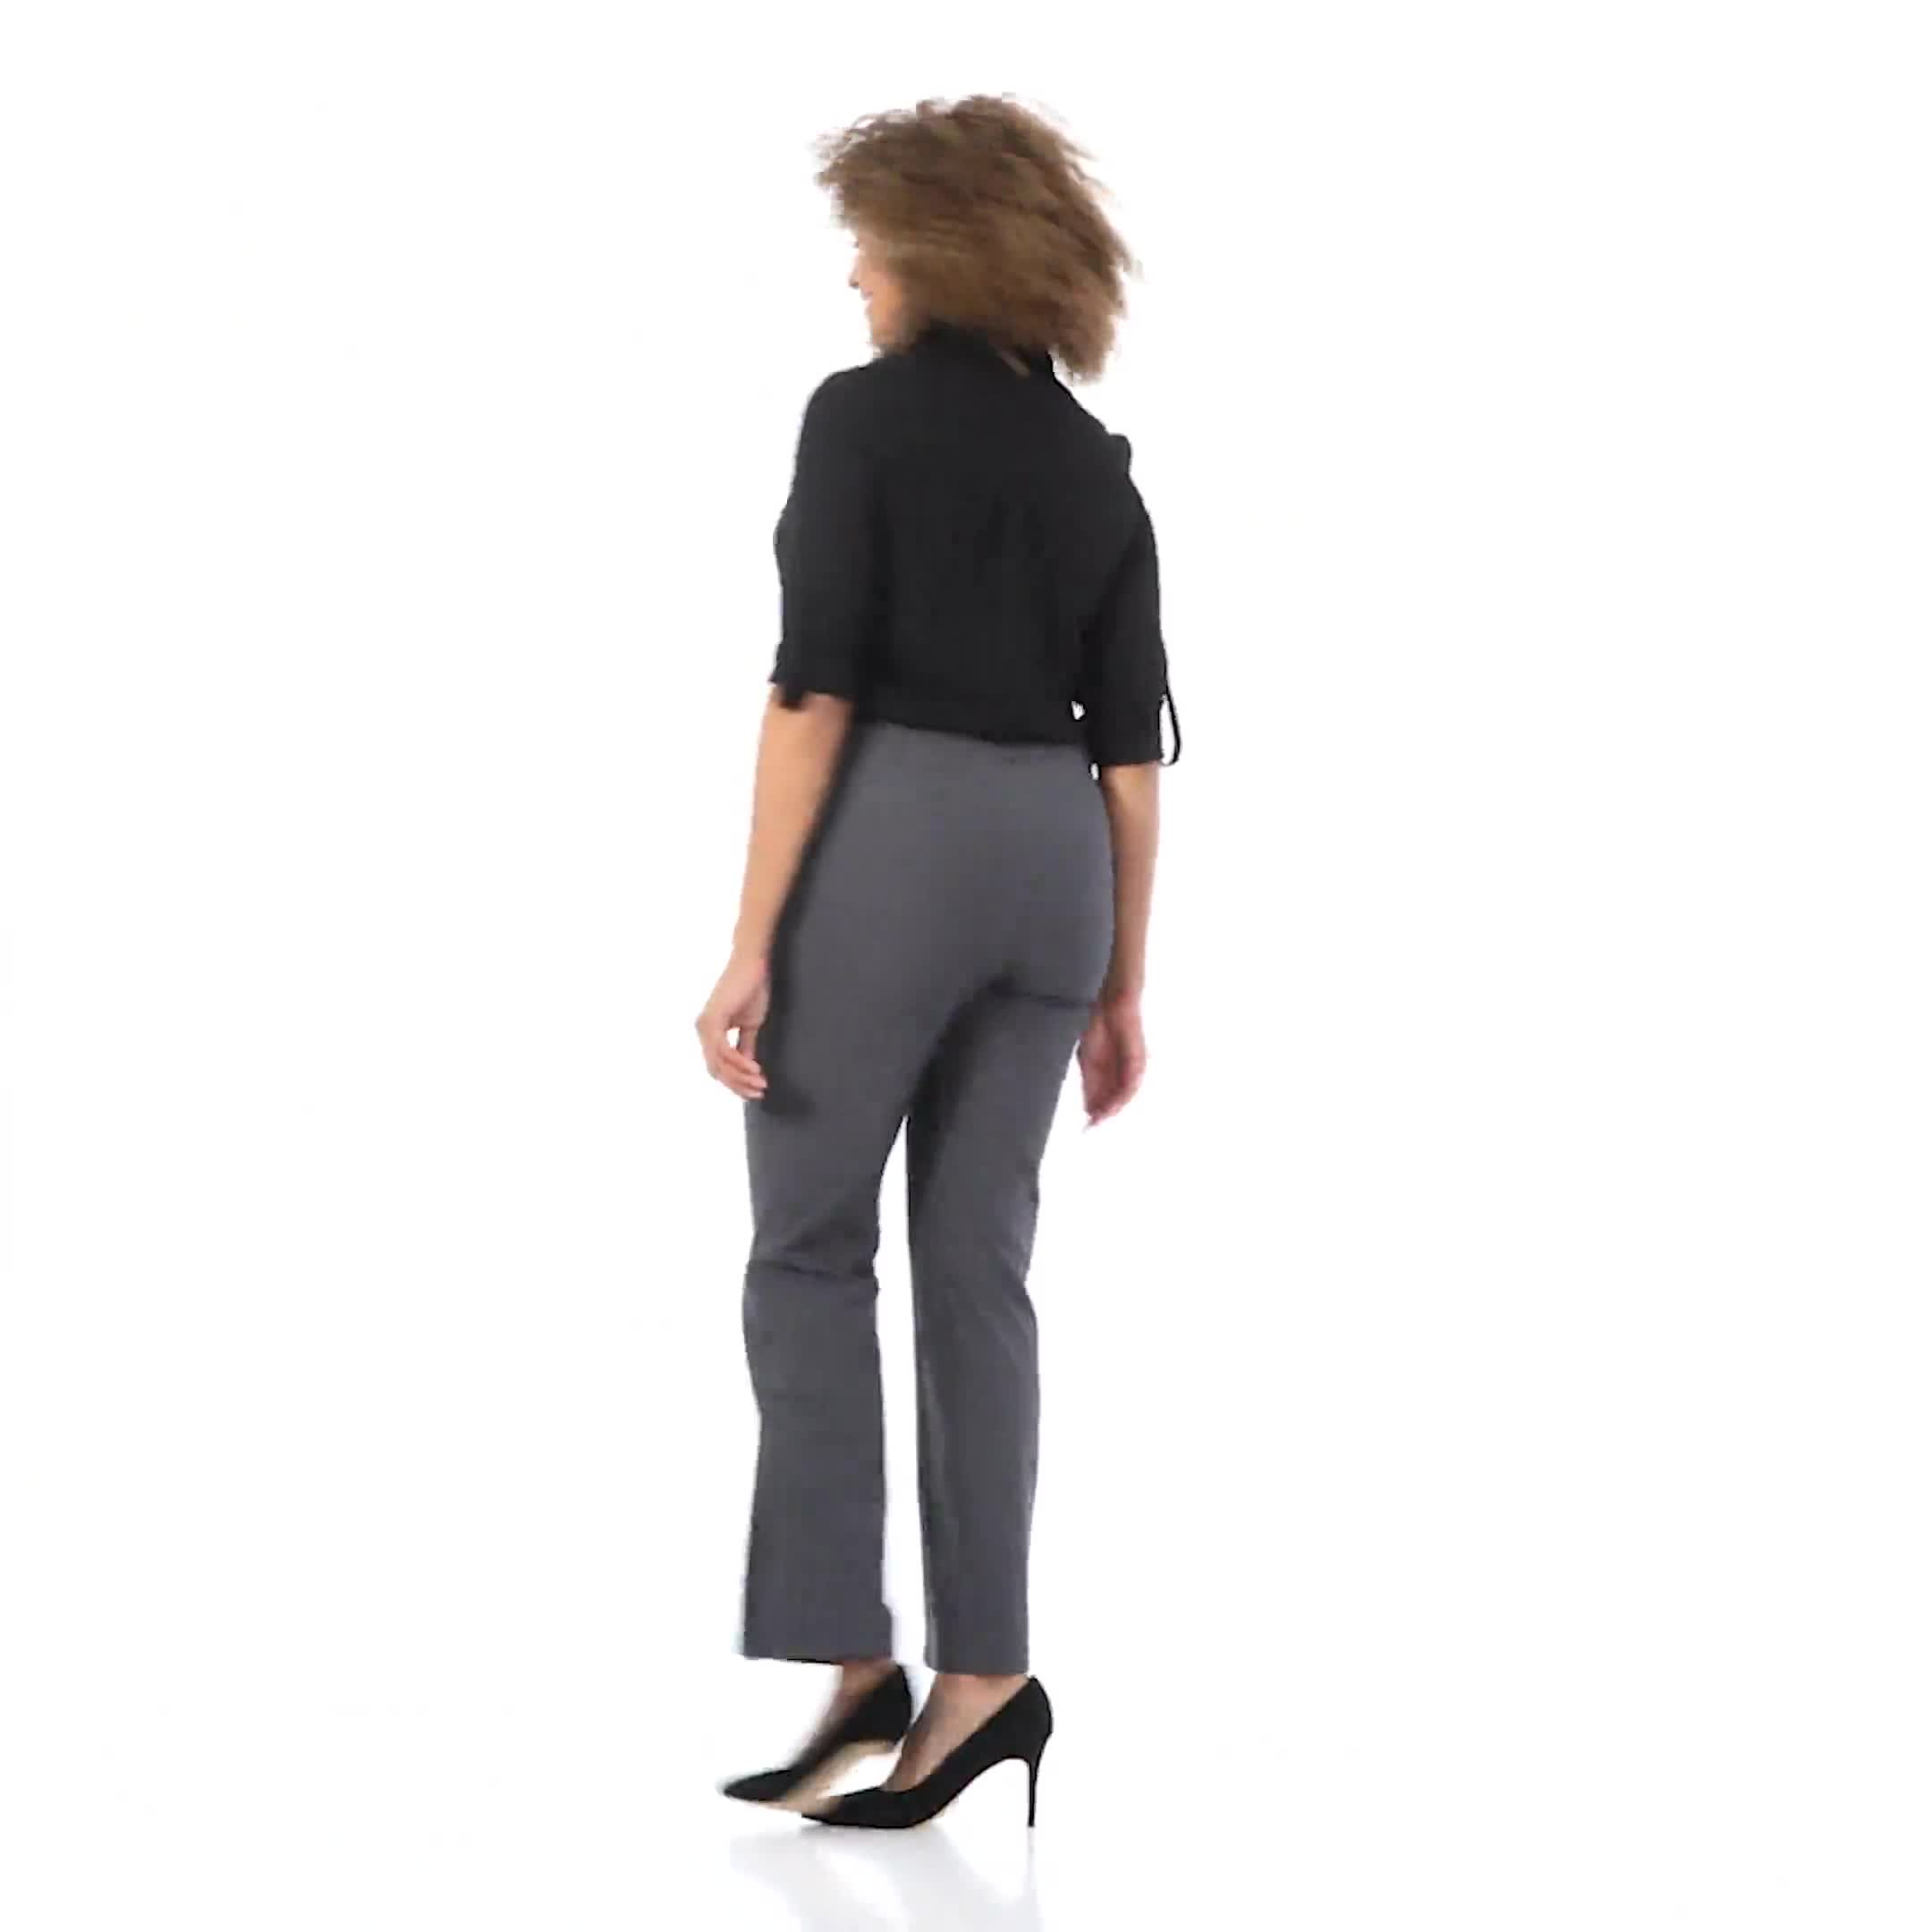 Roz & Ali  Secret Agent  Trouser With Cateye  Pocket  & Zipper - Video